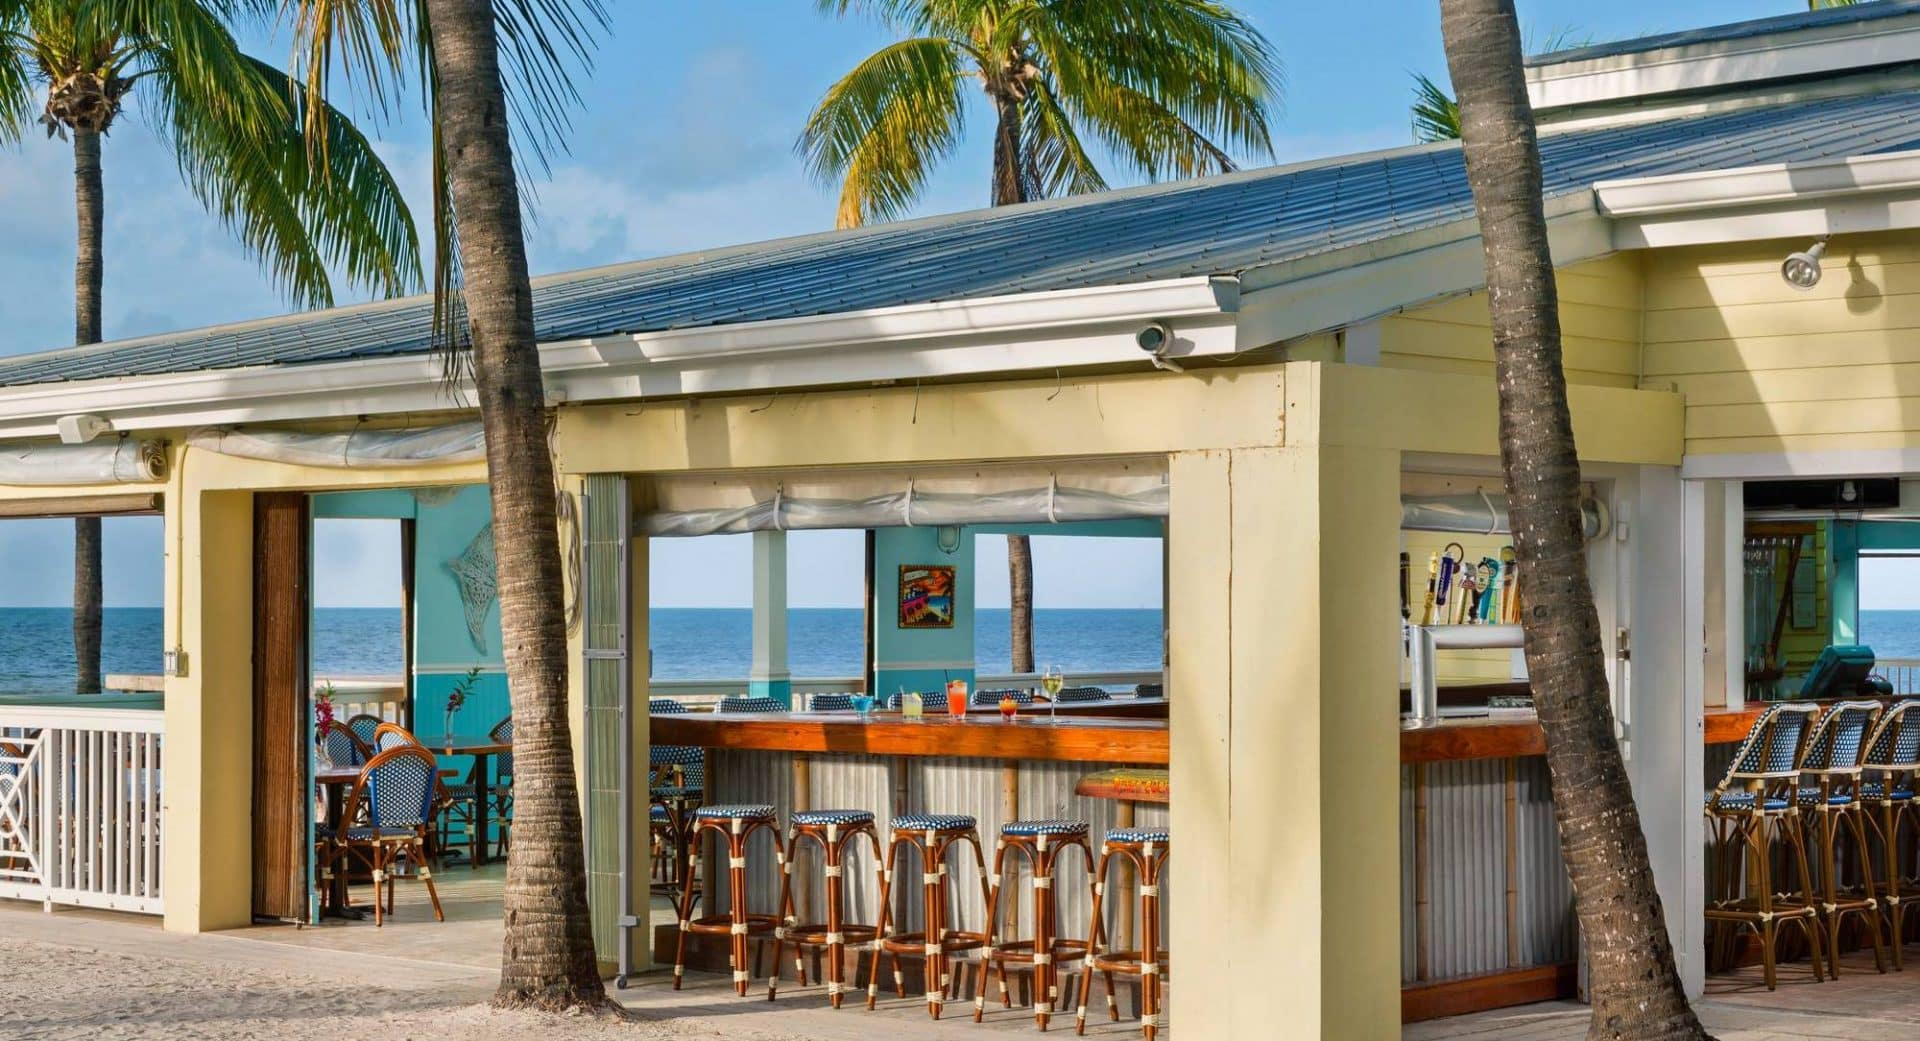 Best Beach Bars in Key West